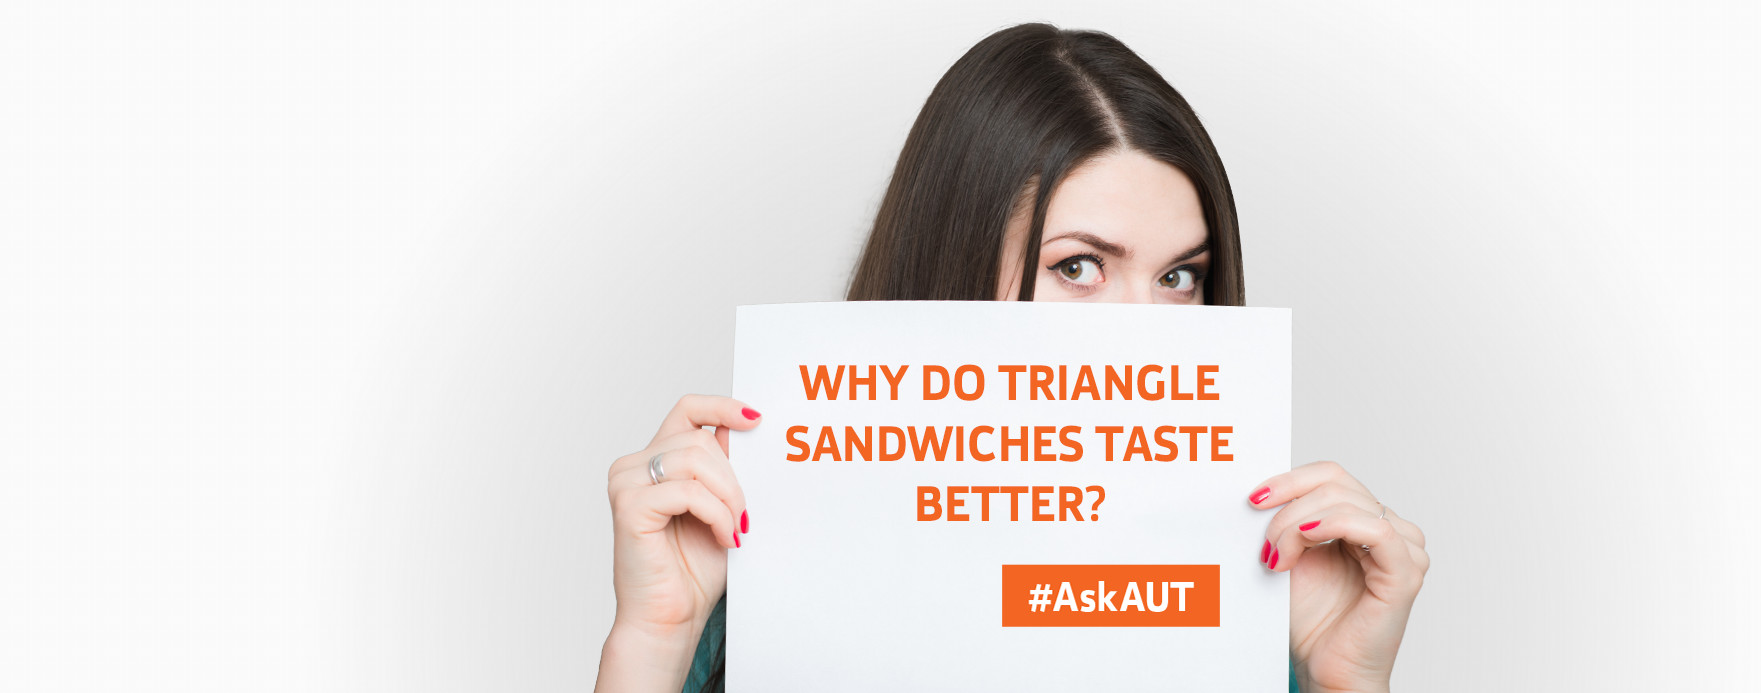 Triangle sandwiches?